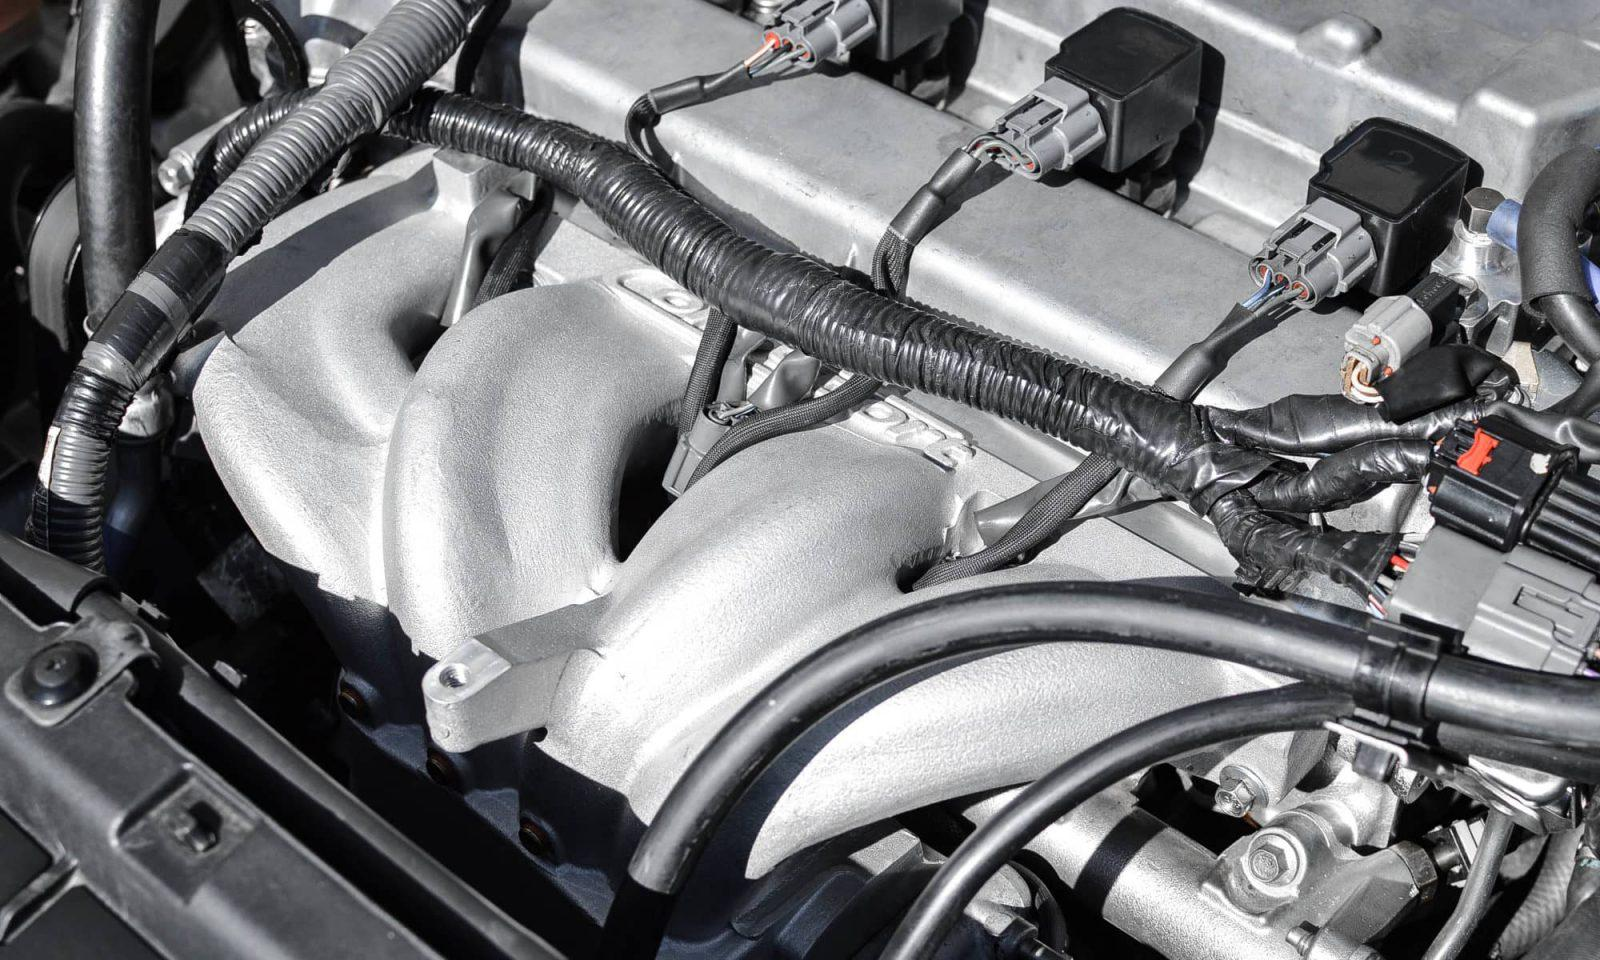 Find how to clean intake manifold